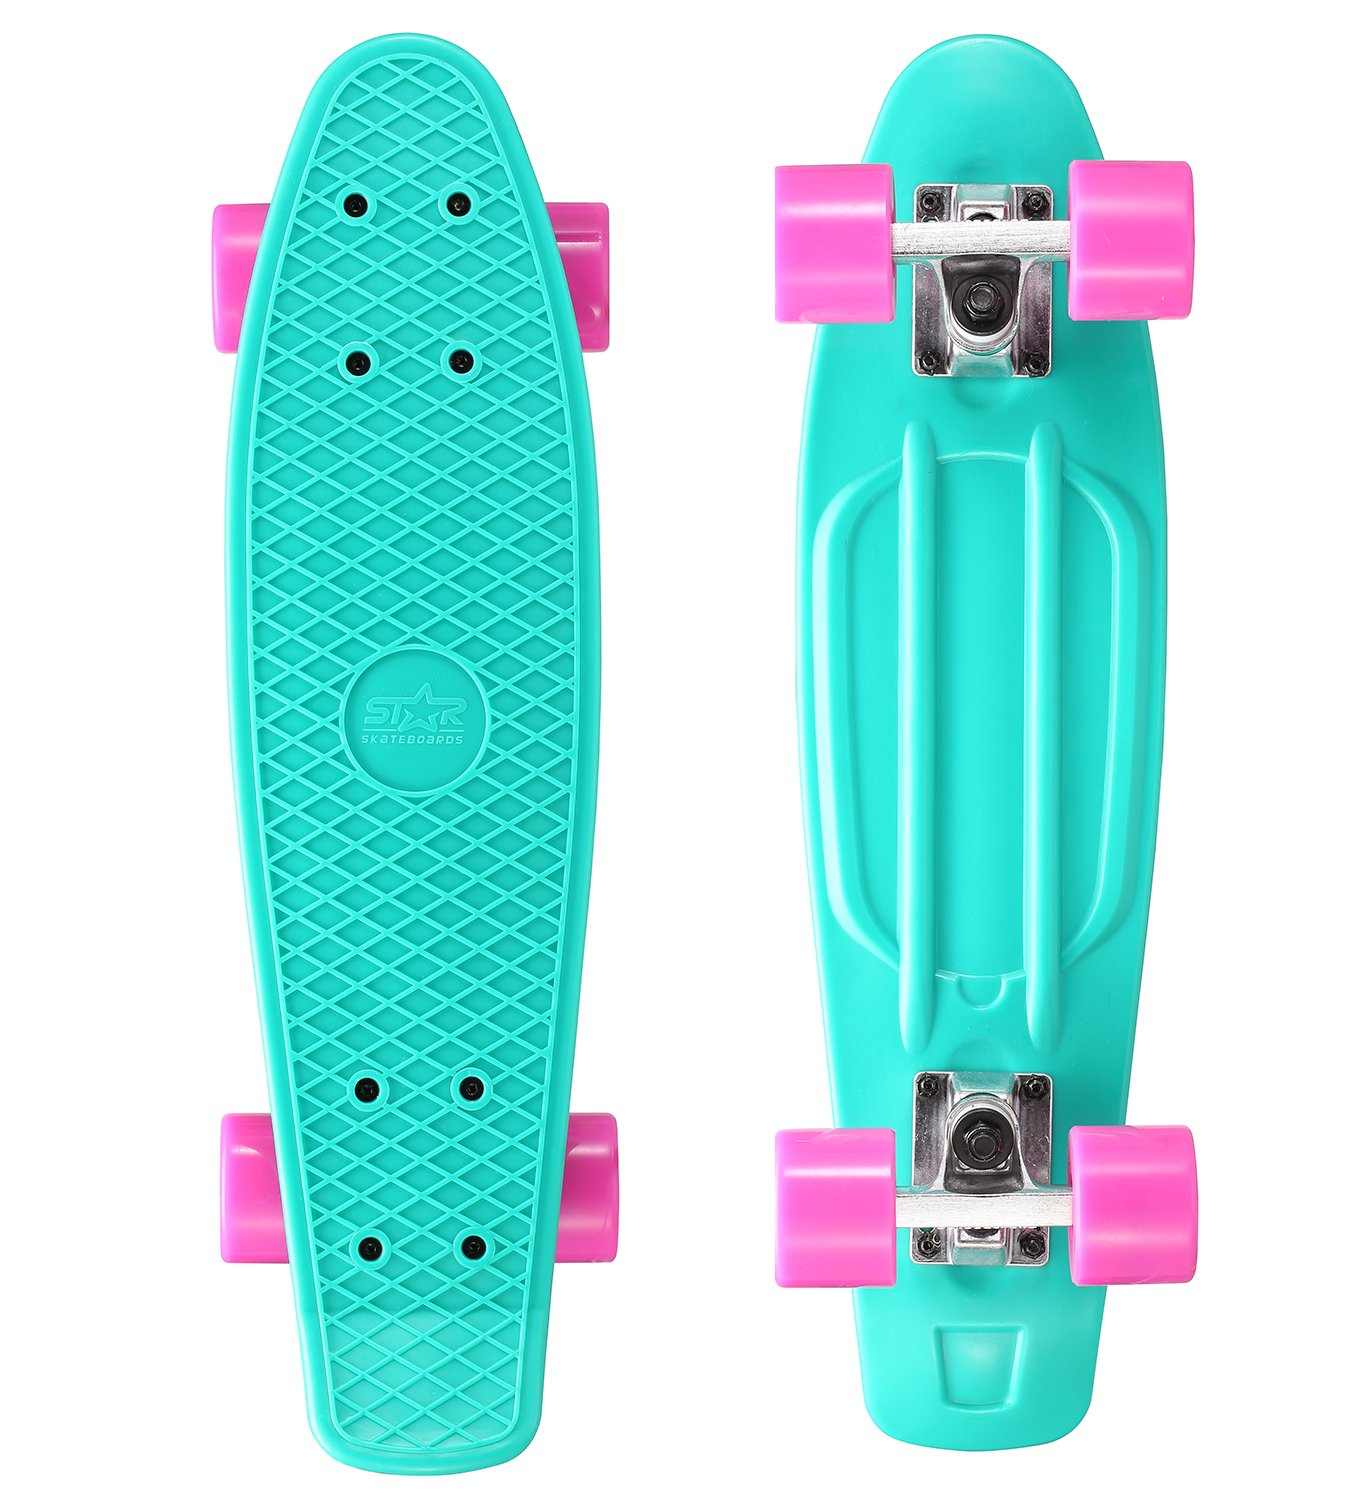 STAR SKATEBOARDS® Tabla Vintage Cruiser Skateboard ? s Edición Diamante ? Turquesa